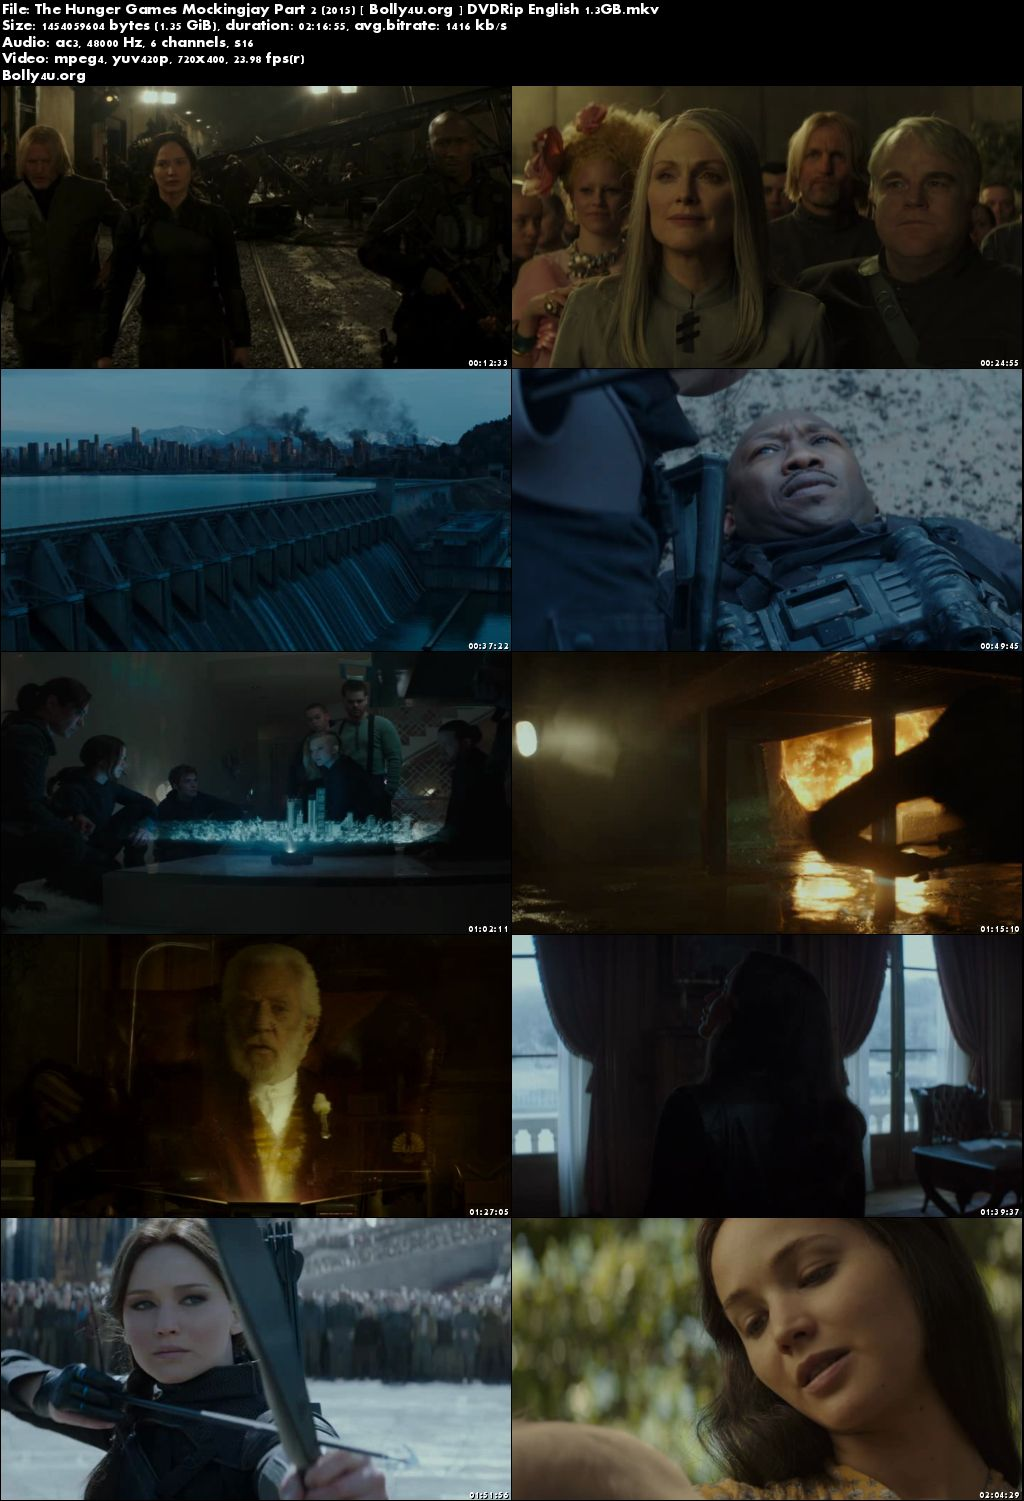 The Hunger Games Mockingjay Part 2 2015 DVDRip English x264 Download